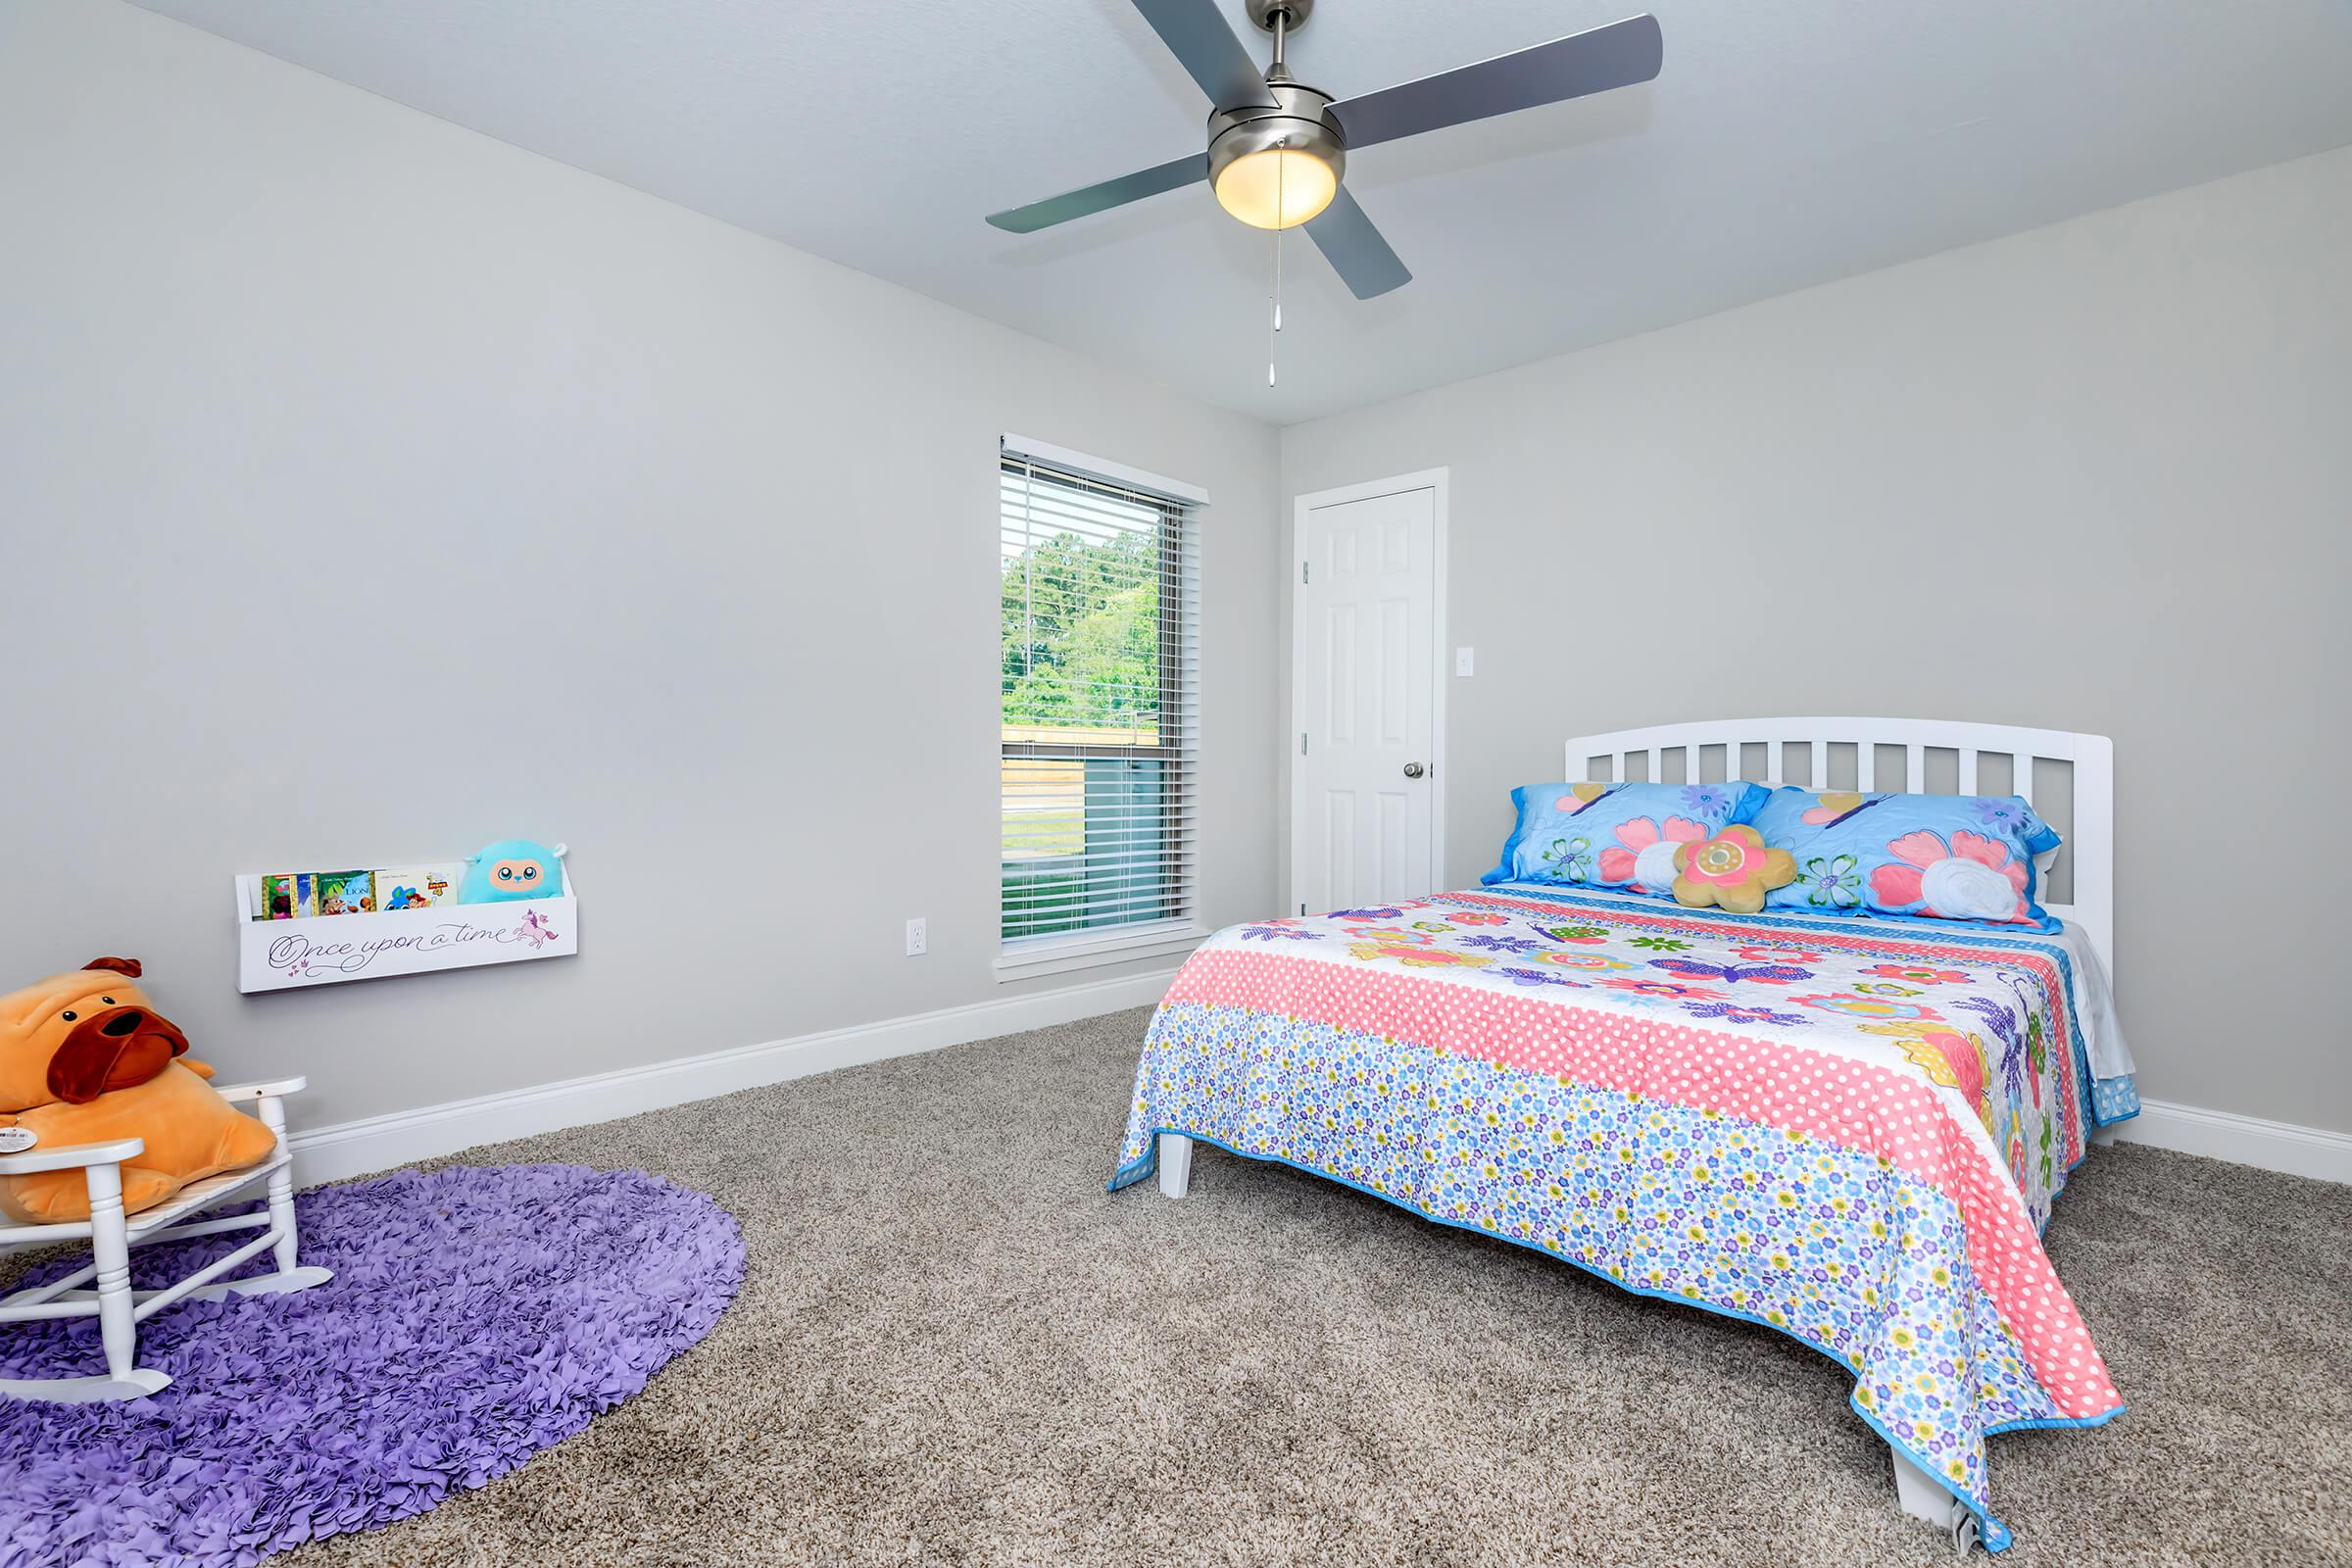 a bedroom with a toy in a room